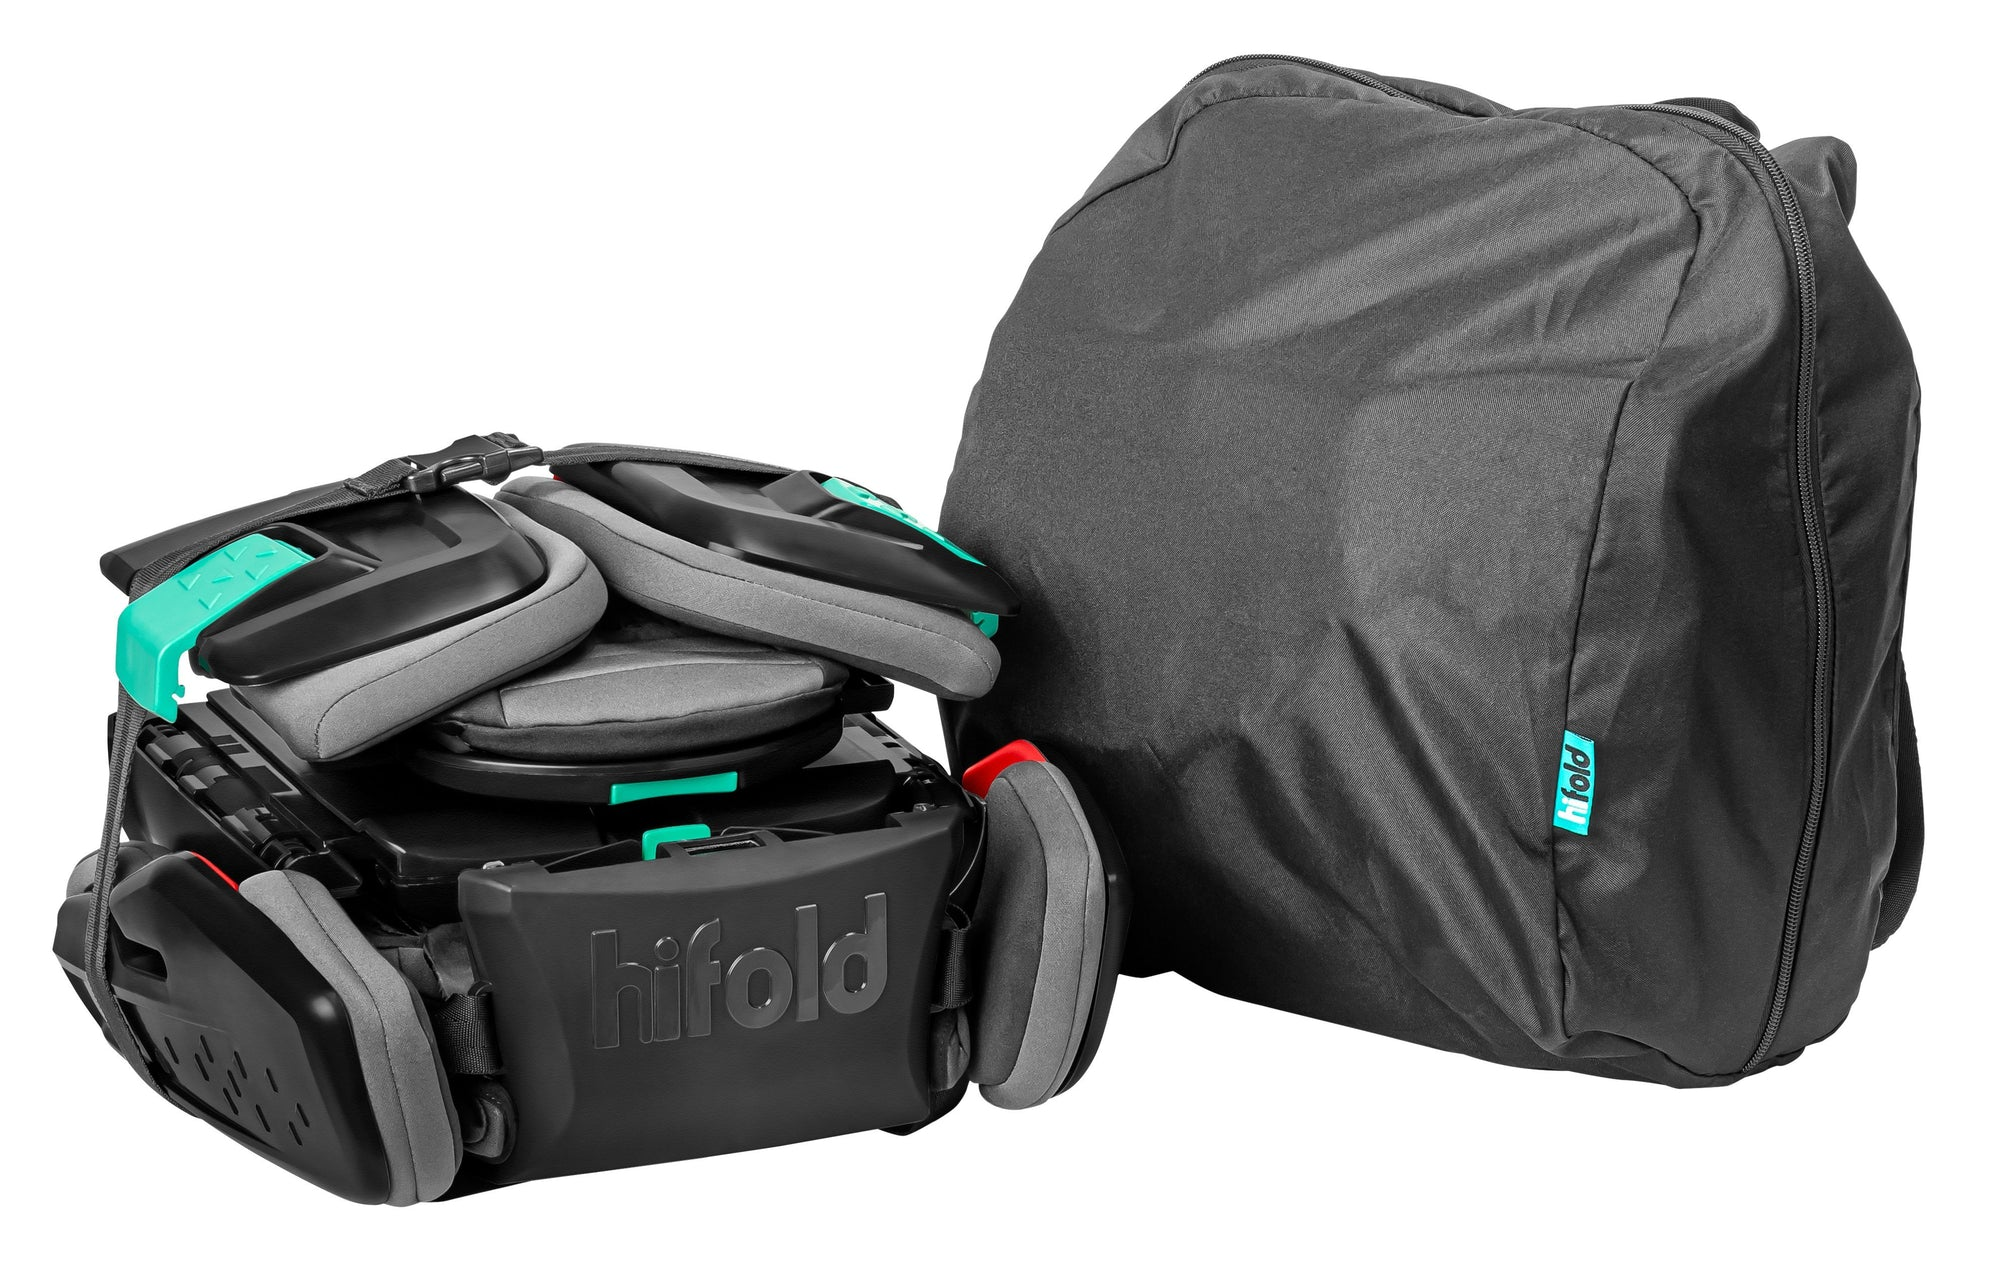 The hifold fit-and-fold booster storage bag